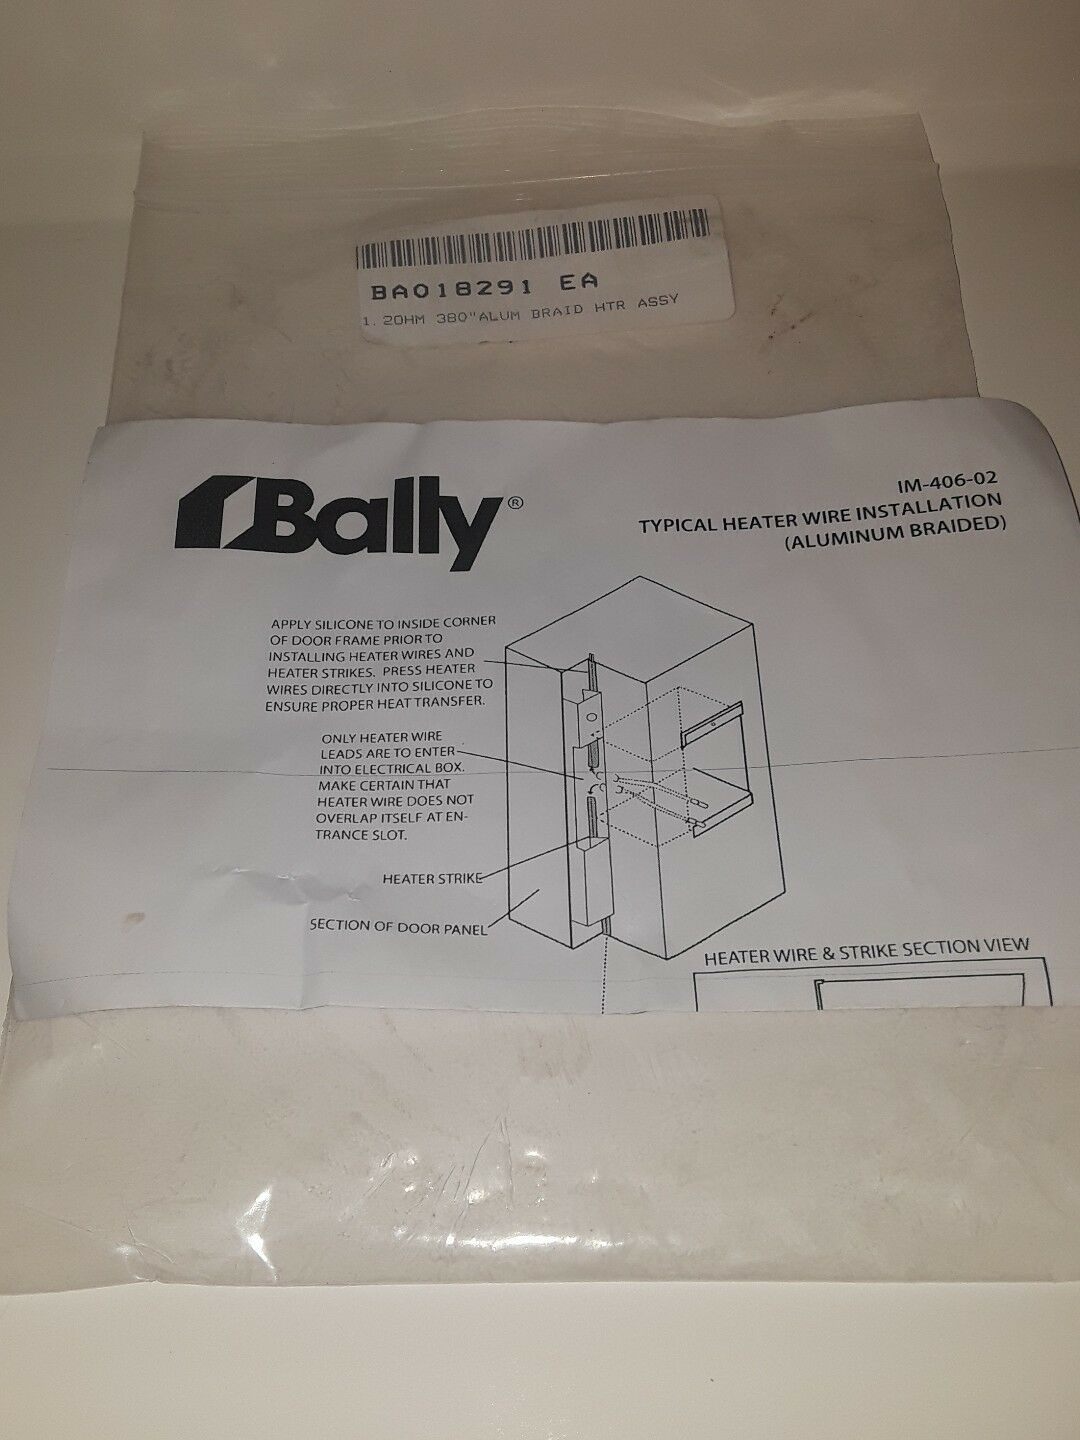 Bally Refrigerated Boxes 018291 Aluminum id Framer Heater Wire ... on